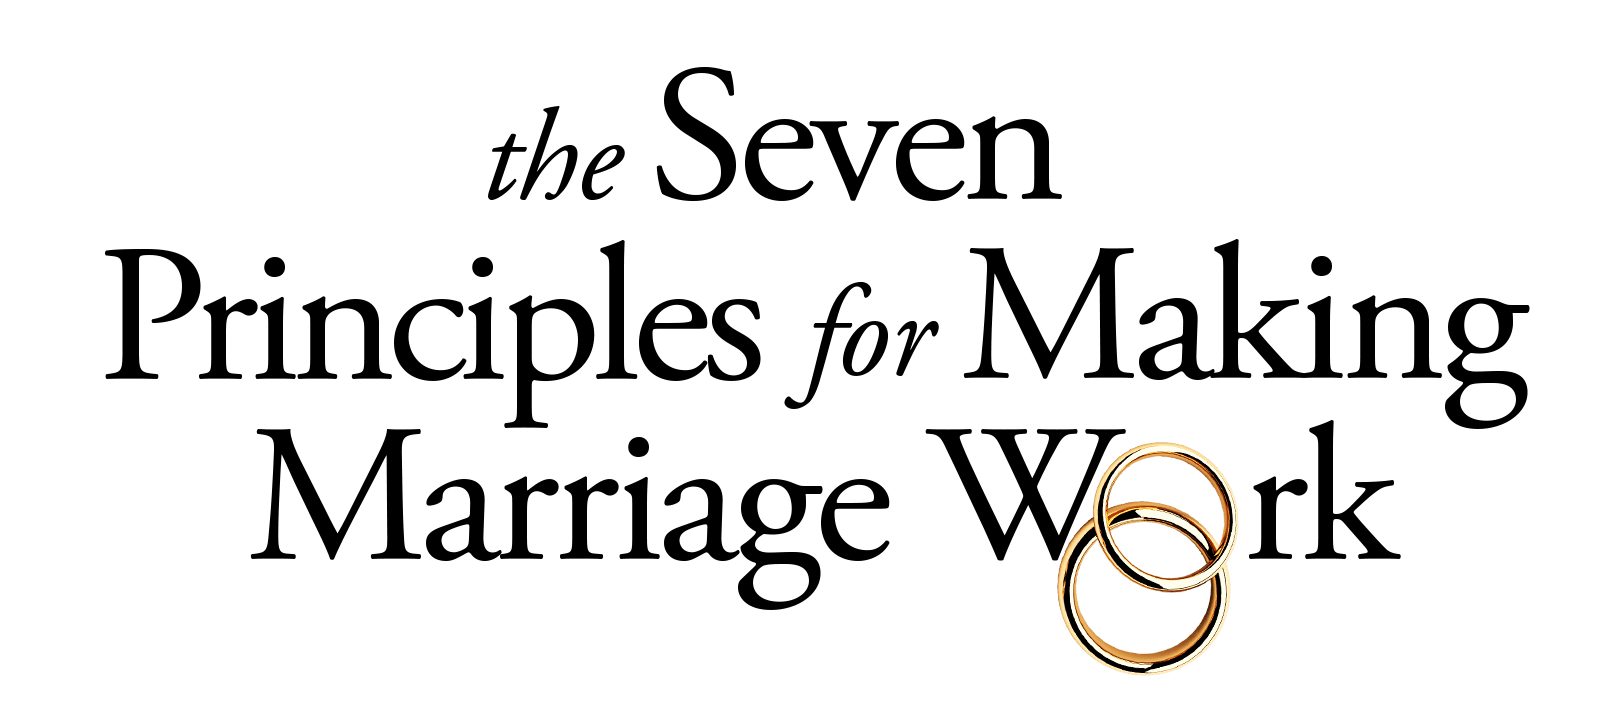 7 principles for making marriage work.png